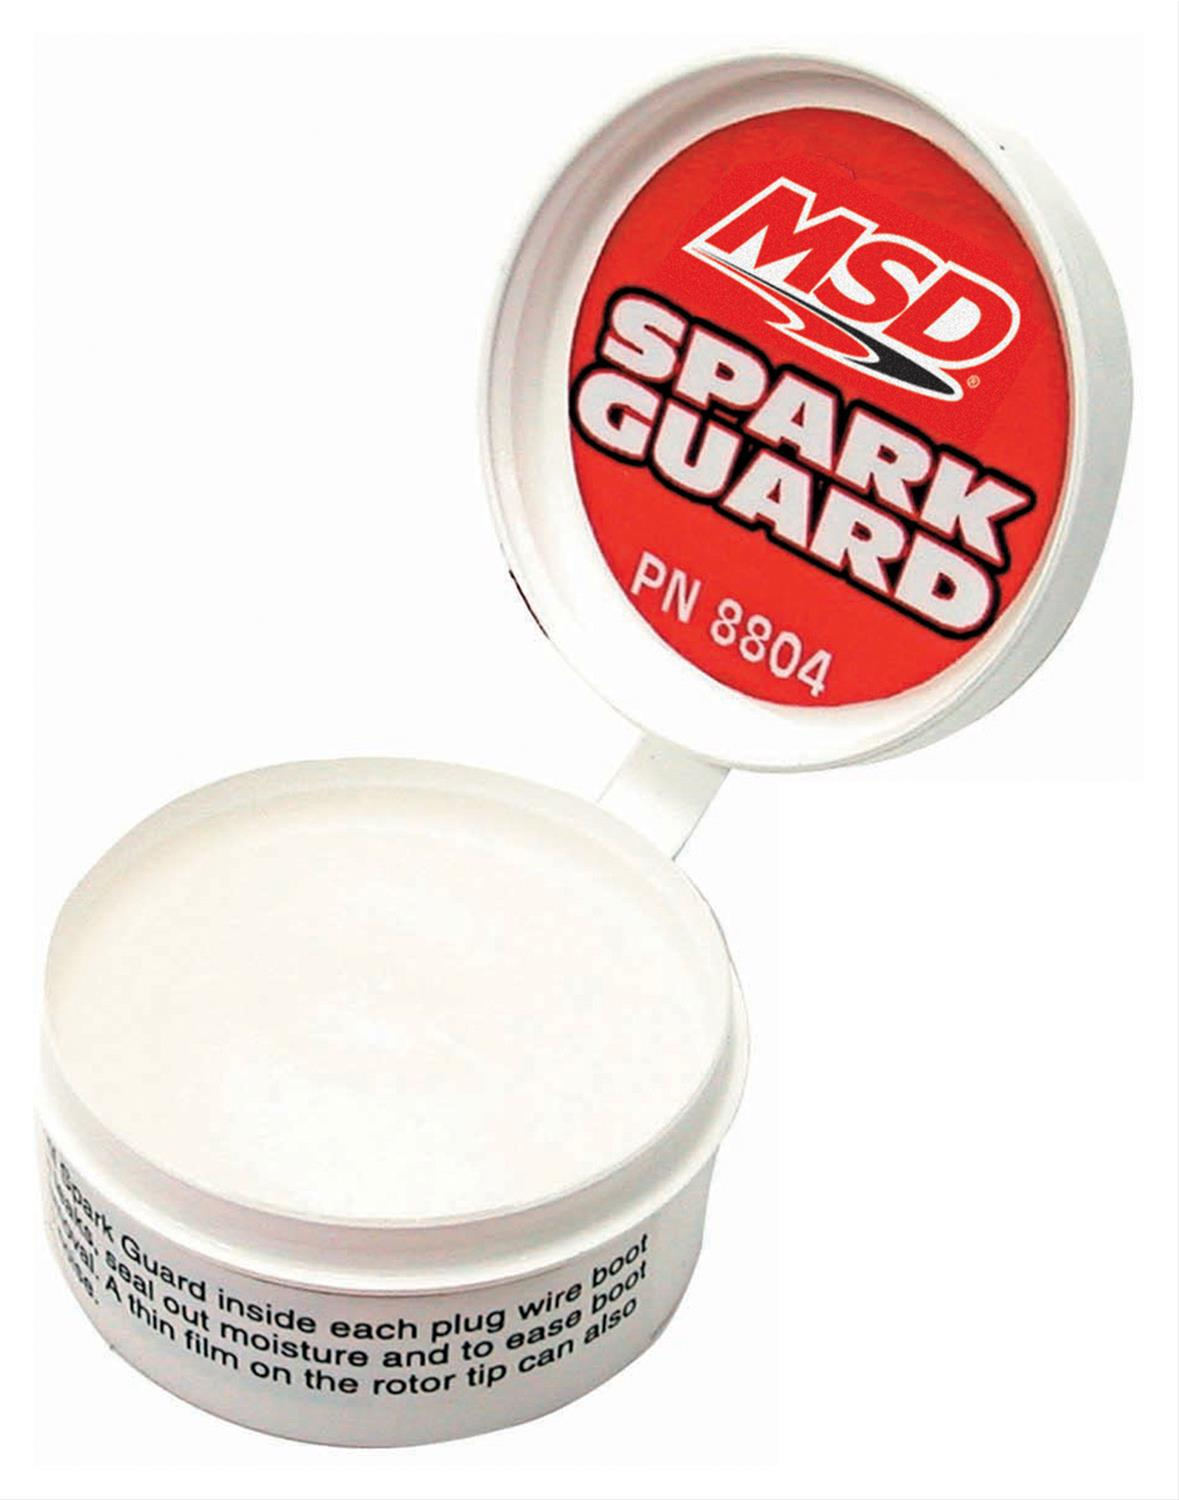 Dielectric Grease Msd Spark Guard Dielectric Grease 8804